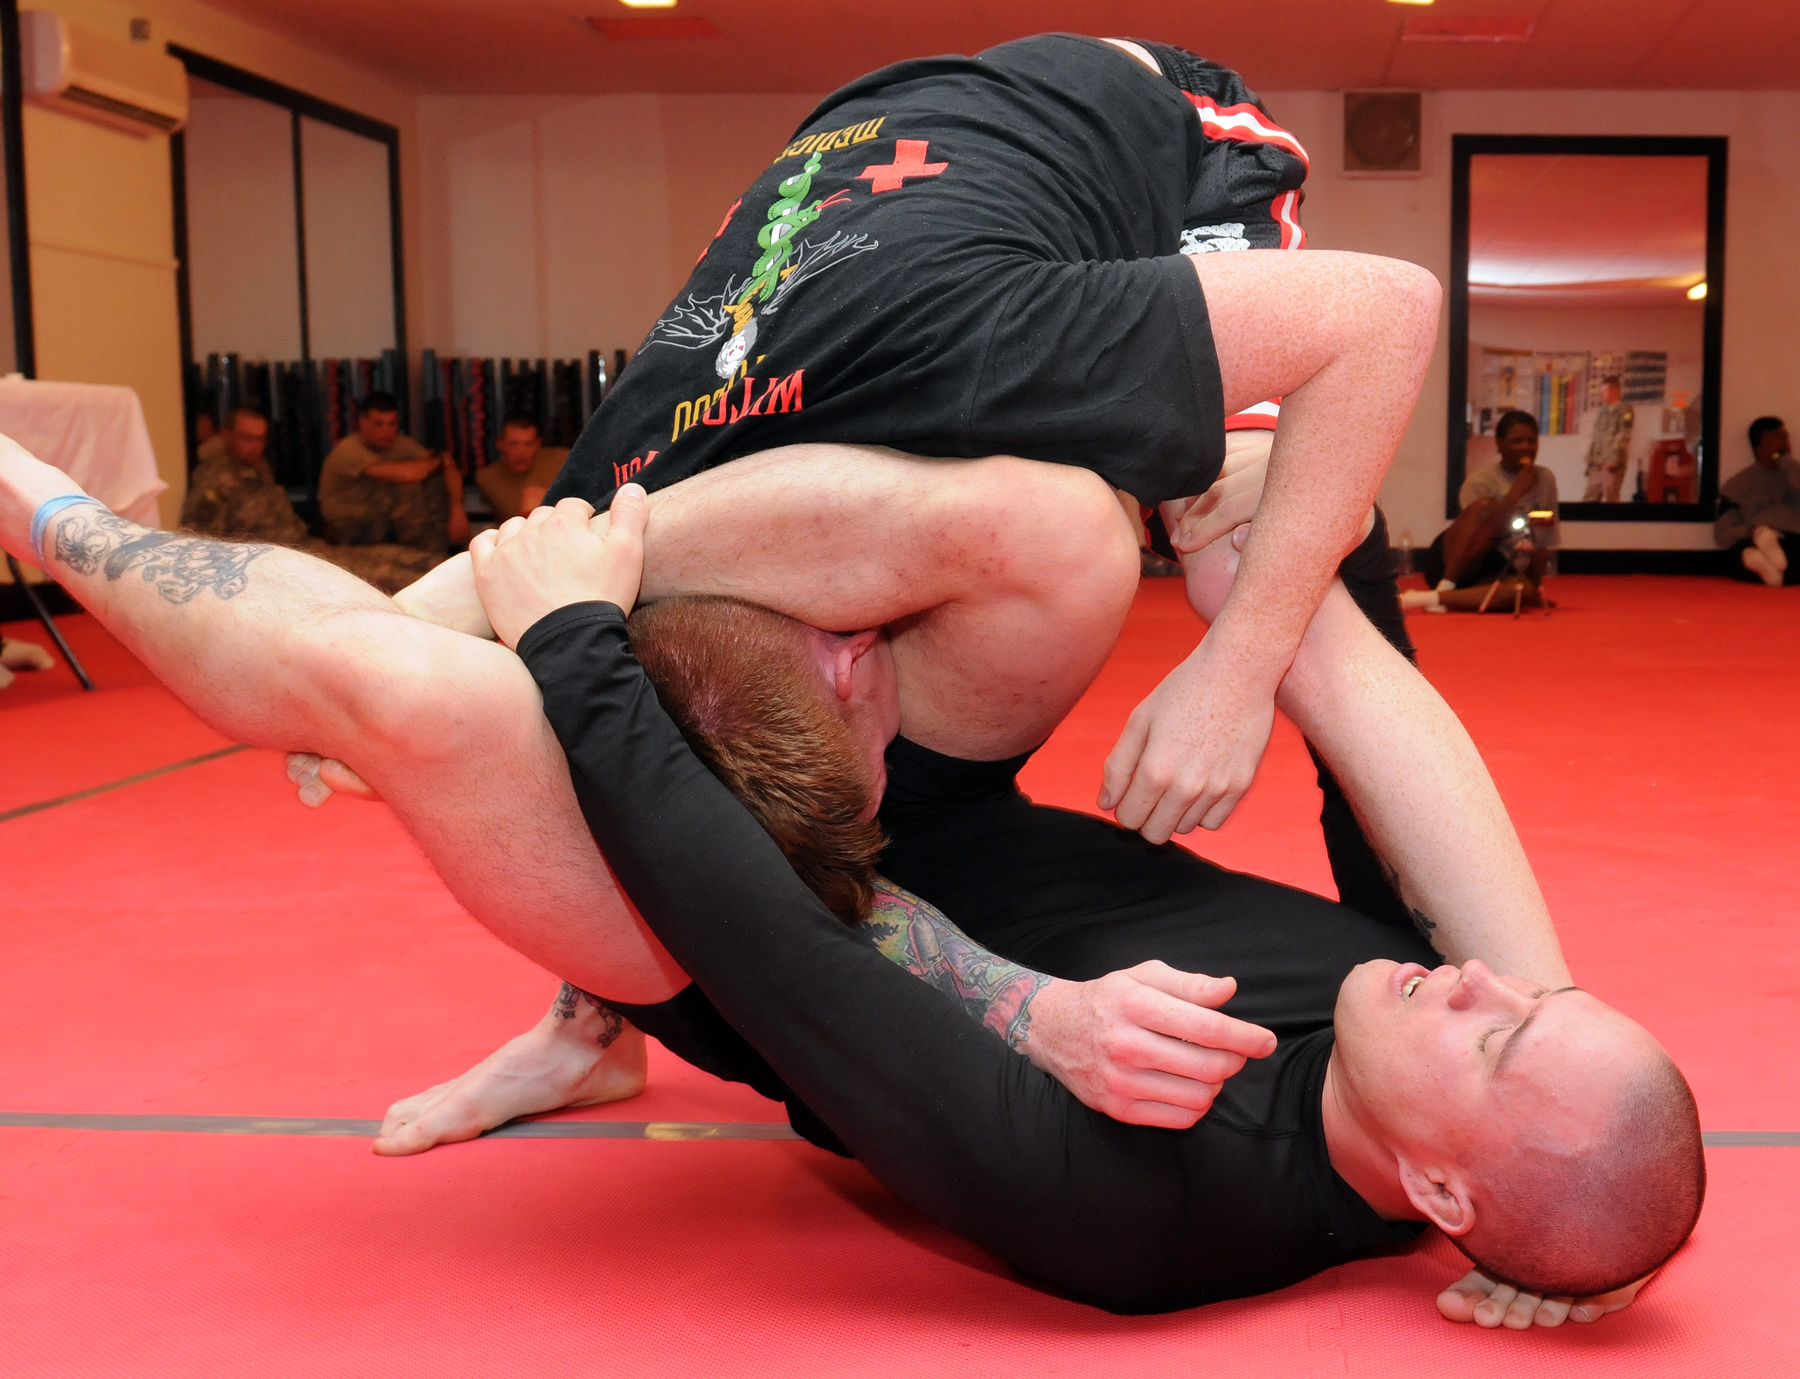 Triangle Choke while Submission Wrestling